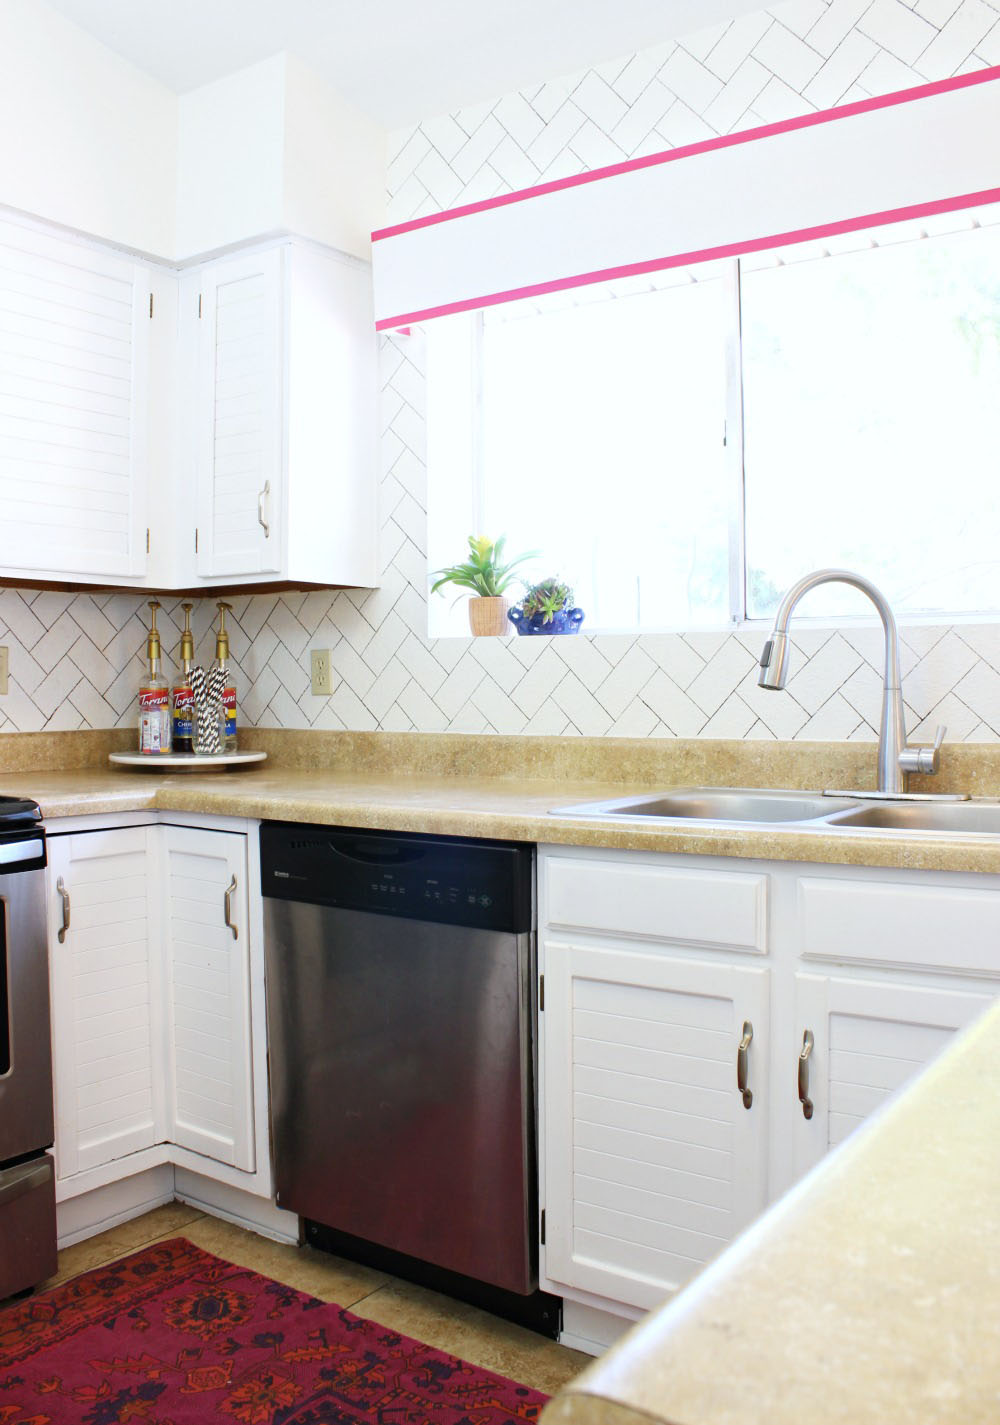 The best way to paint your cabinets classy clutter for Best way to paint kitchen cabinets video